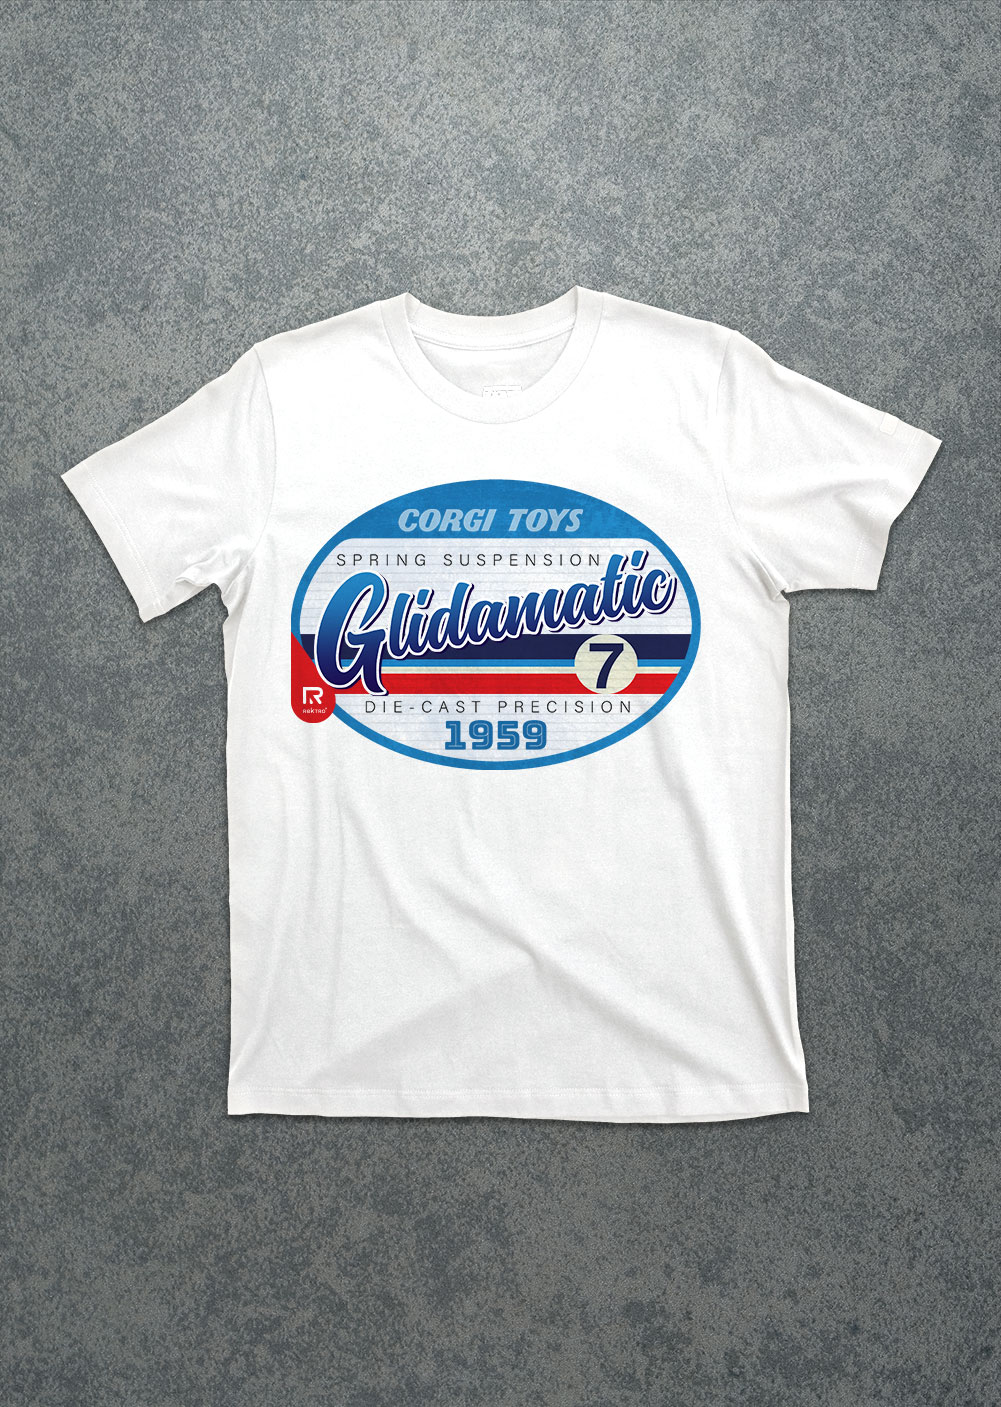 Old_Flames-Glidamatic-white-tee